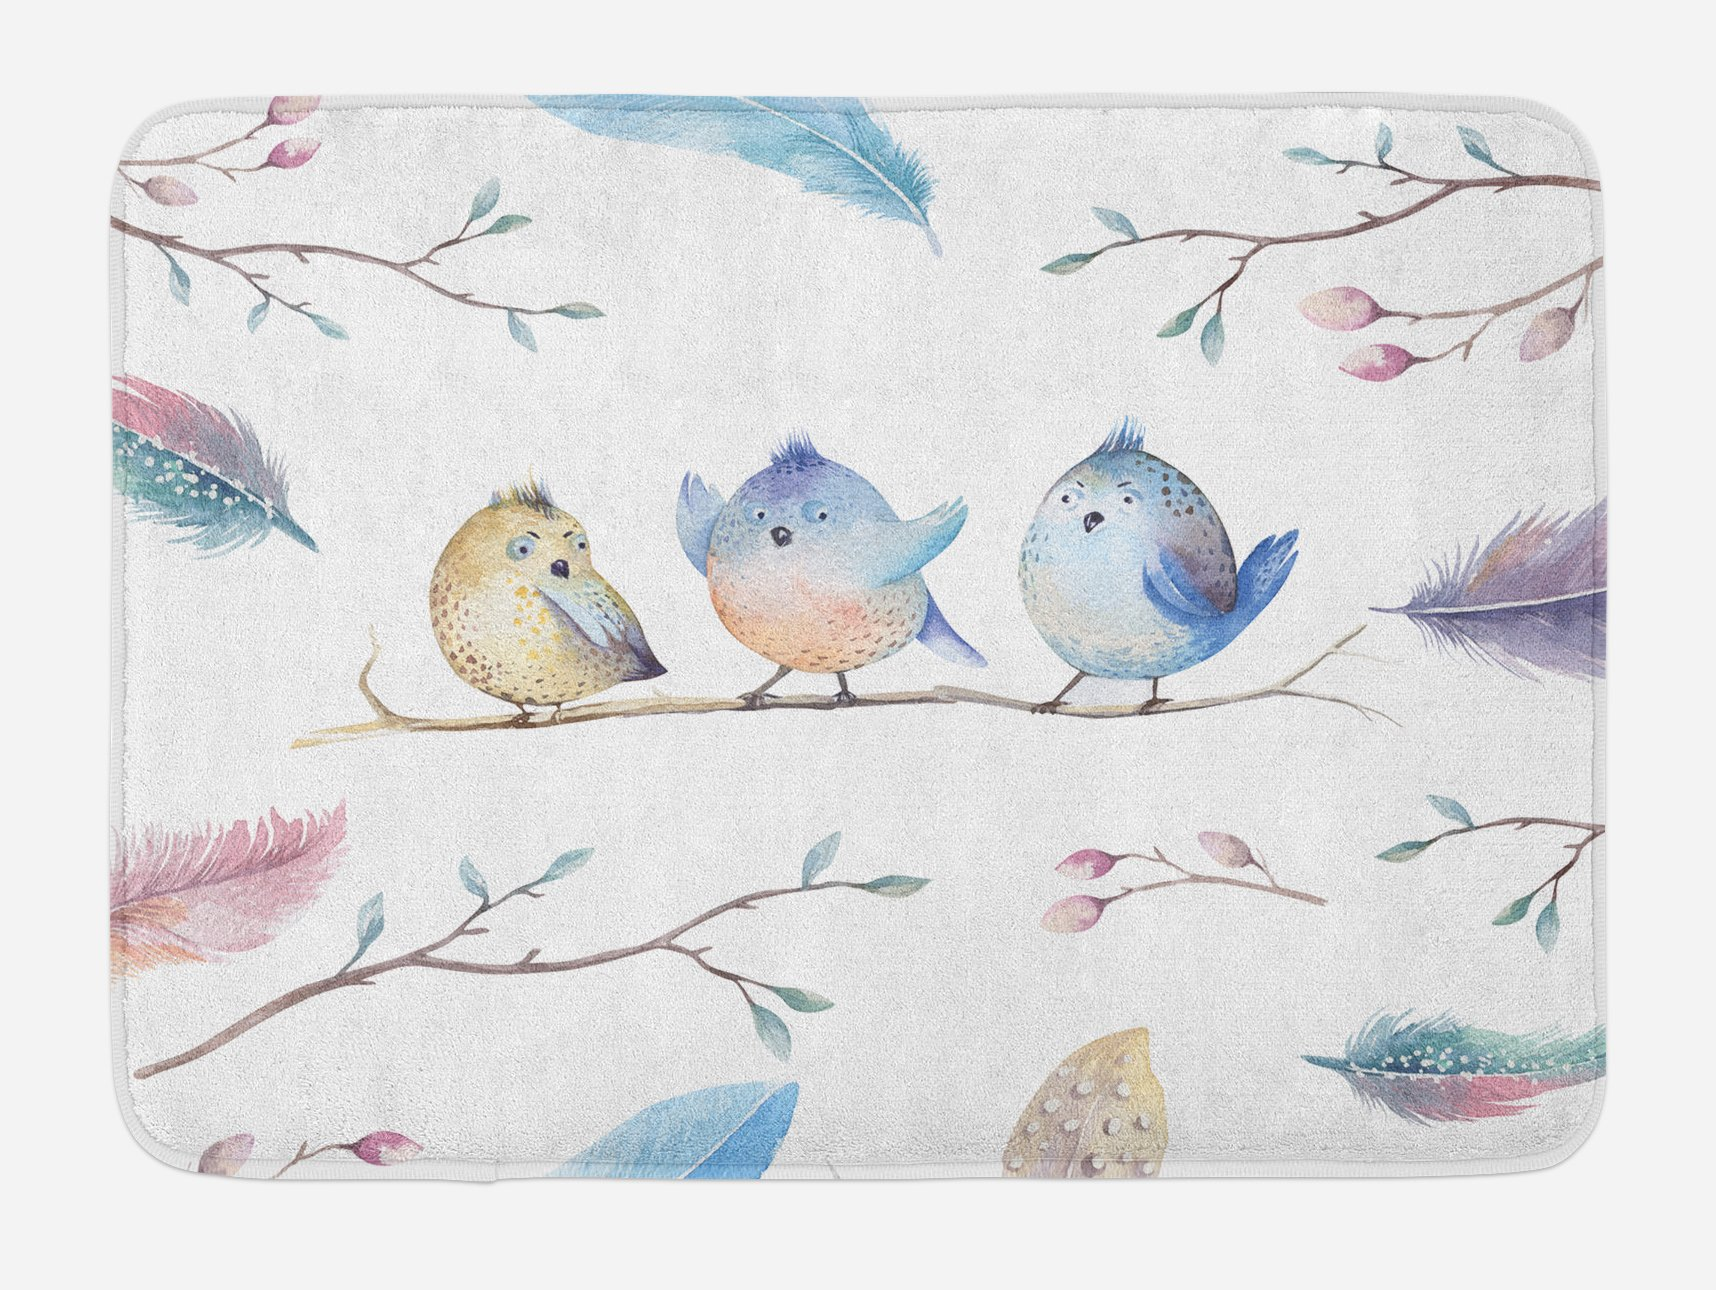 Lunarable Animal Bath Mat, Hand Drawn Birds Sitting on Branch Cartoon in Boho Style Watercolors Leaves Feathers, Plush Bathroom Decor Mat with Non Slip Backing, 29.5 W X 17.5 W Inches, Multicolor